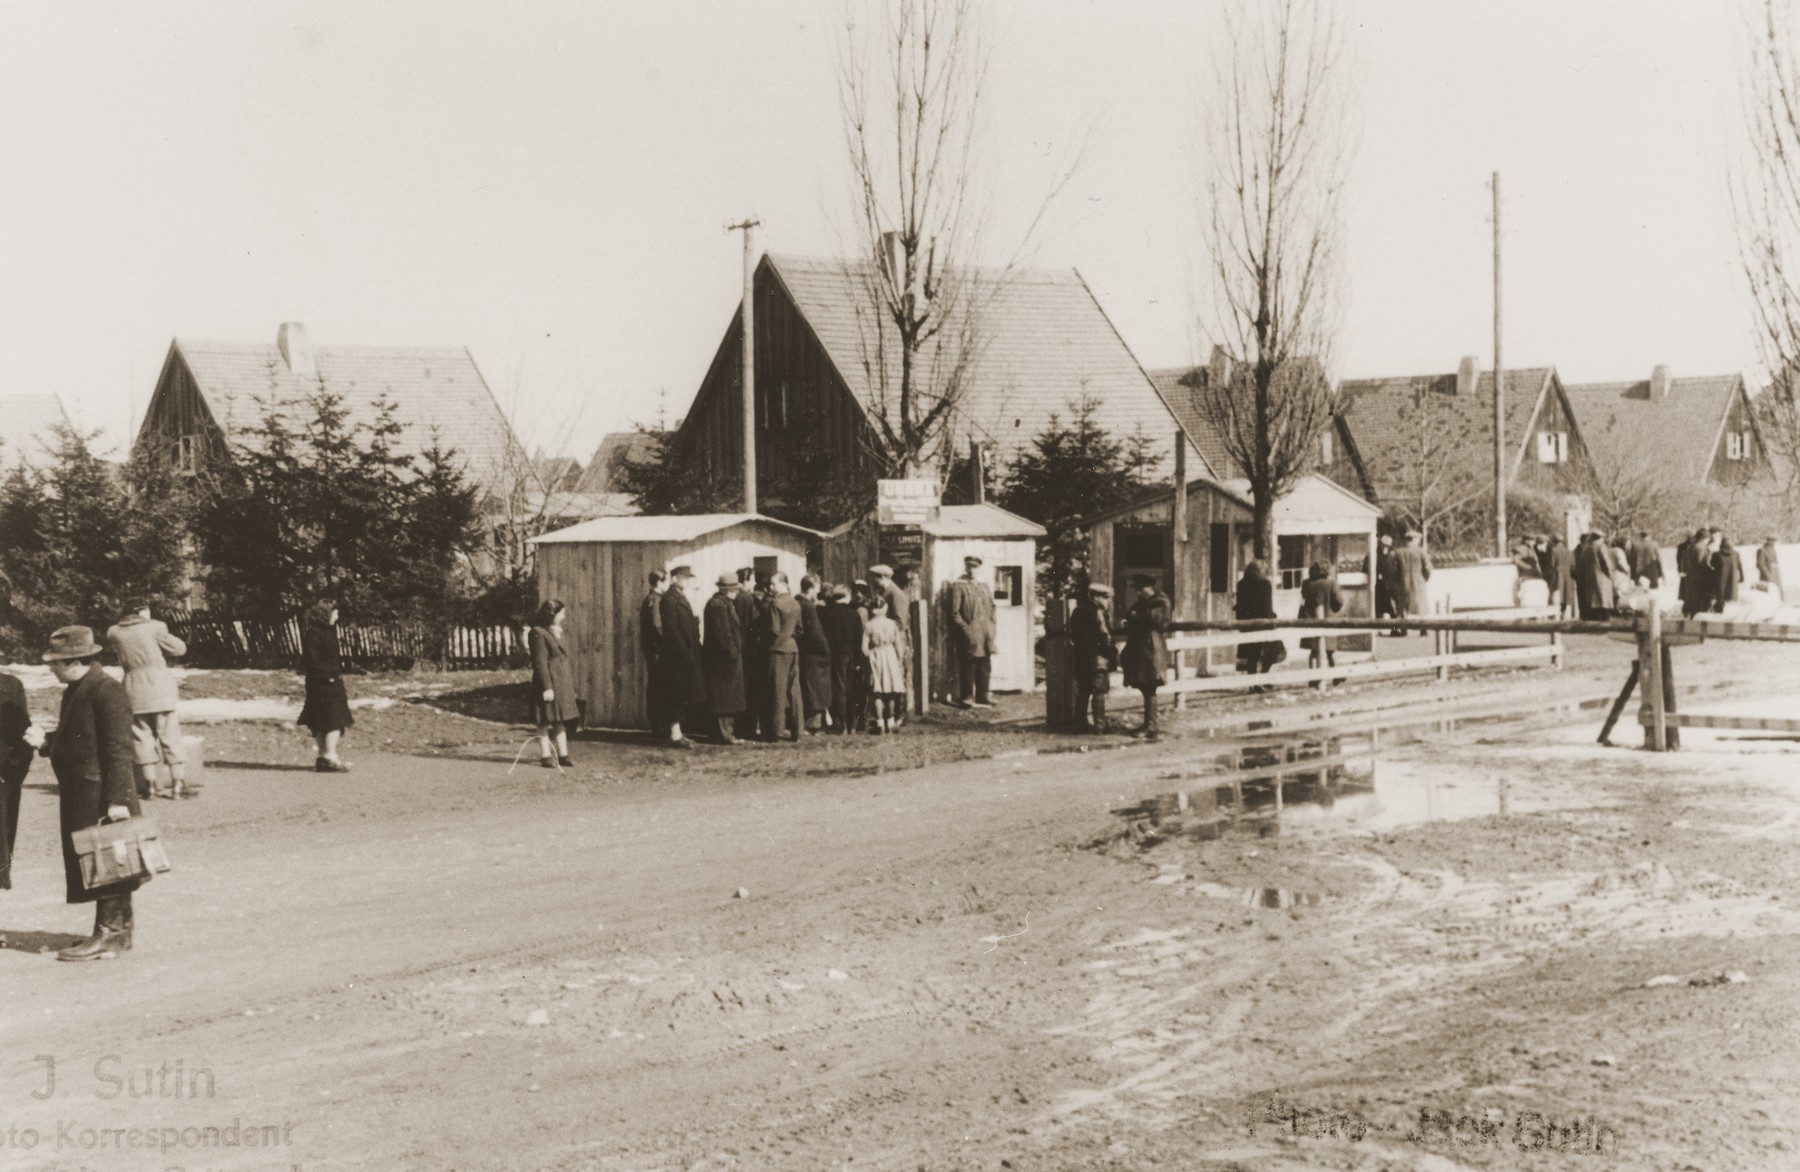 Street scene in the Neu Freimann displaced persons camp.